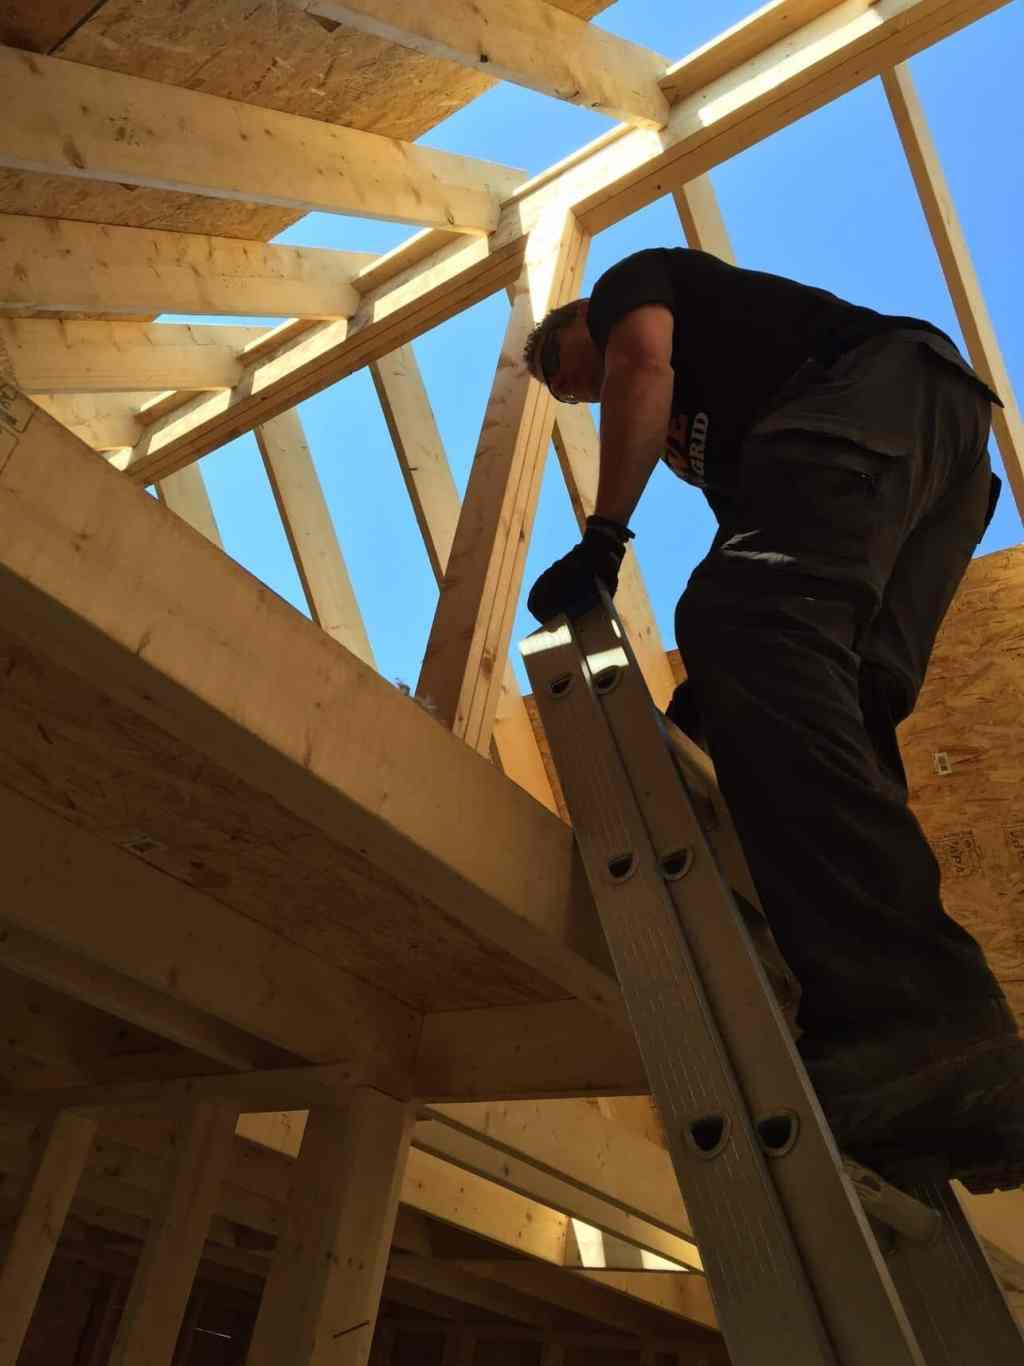 The-Off-Grid-Cabin-Roof-OSB-Sheathing-almost-done-Steve-Barnes-Loft